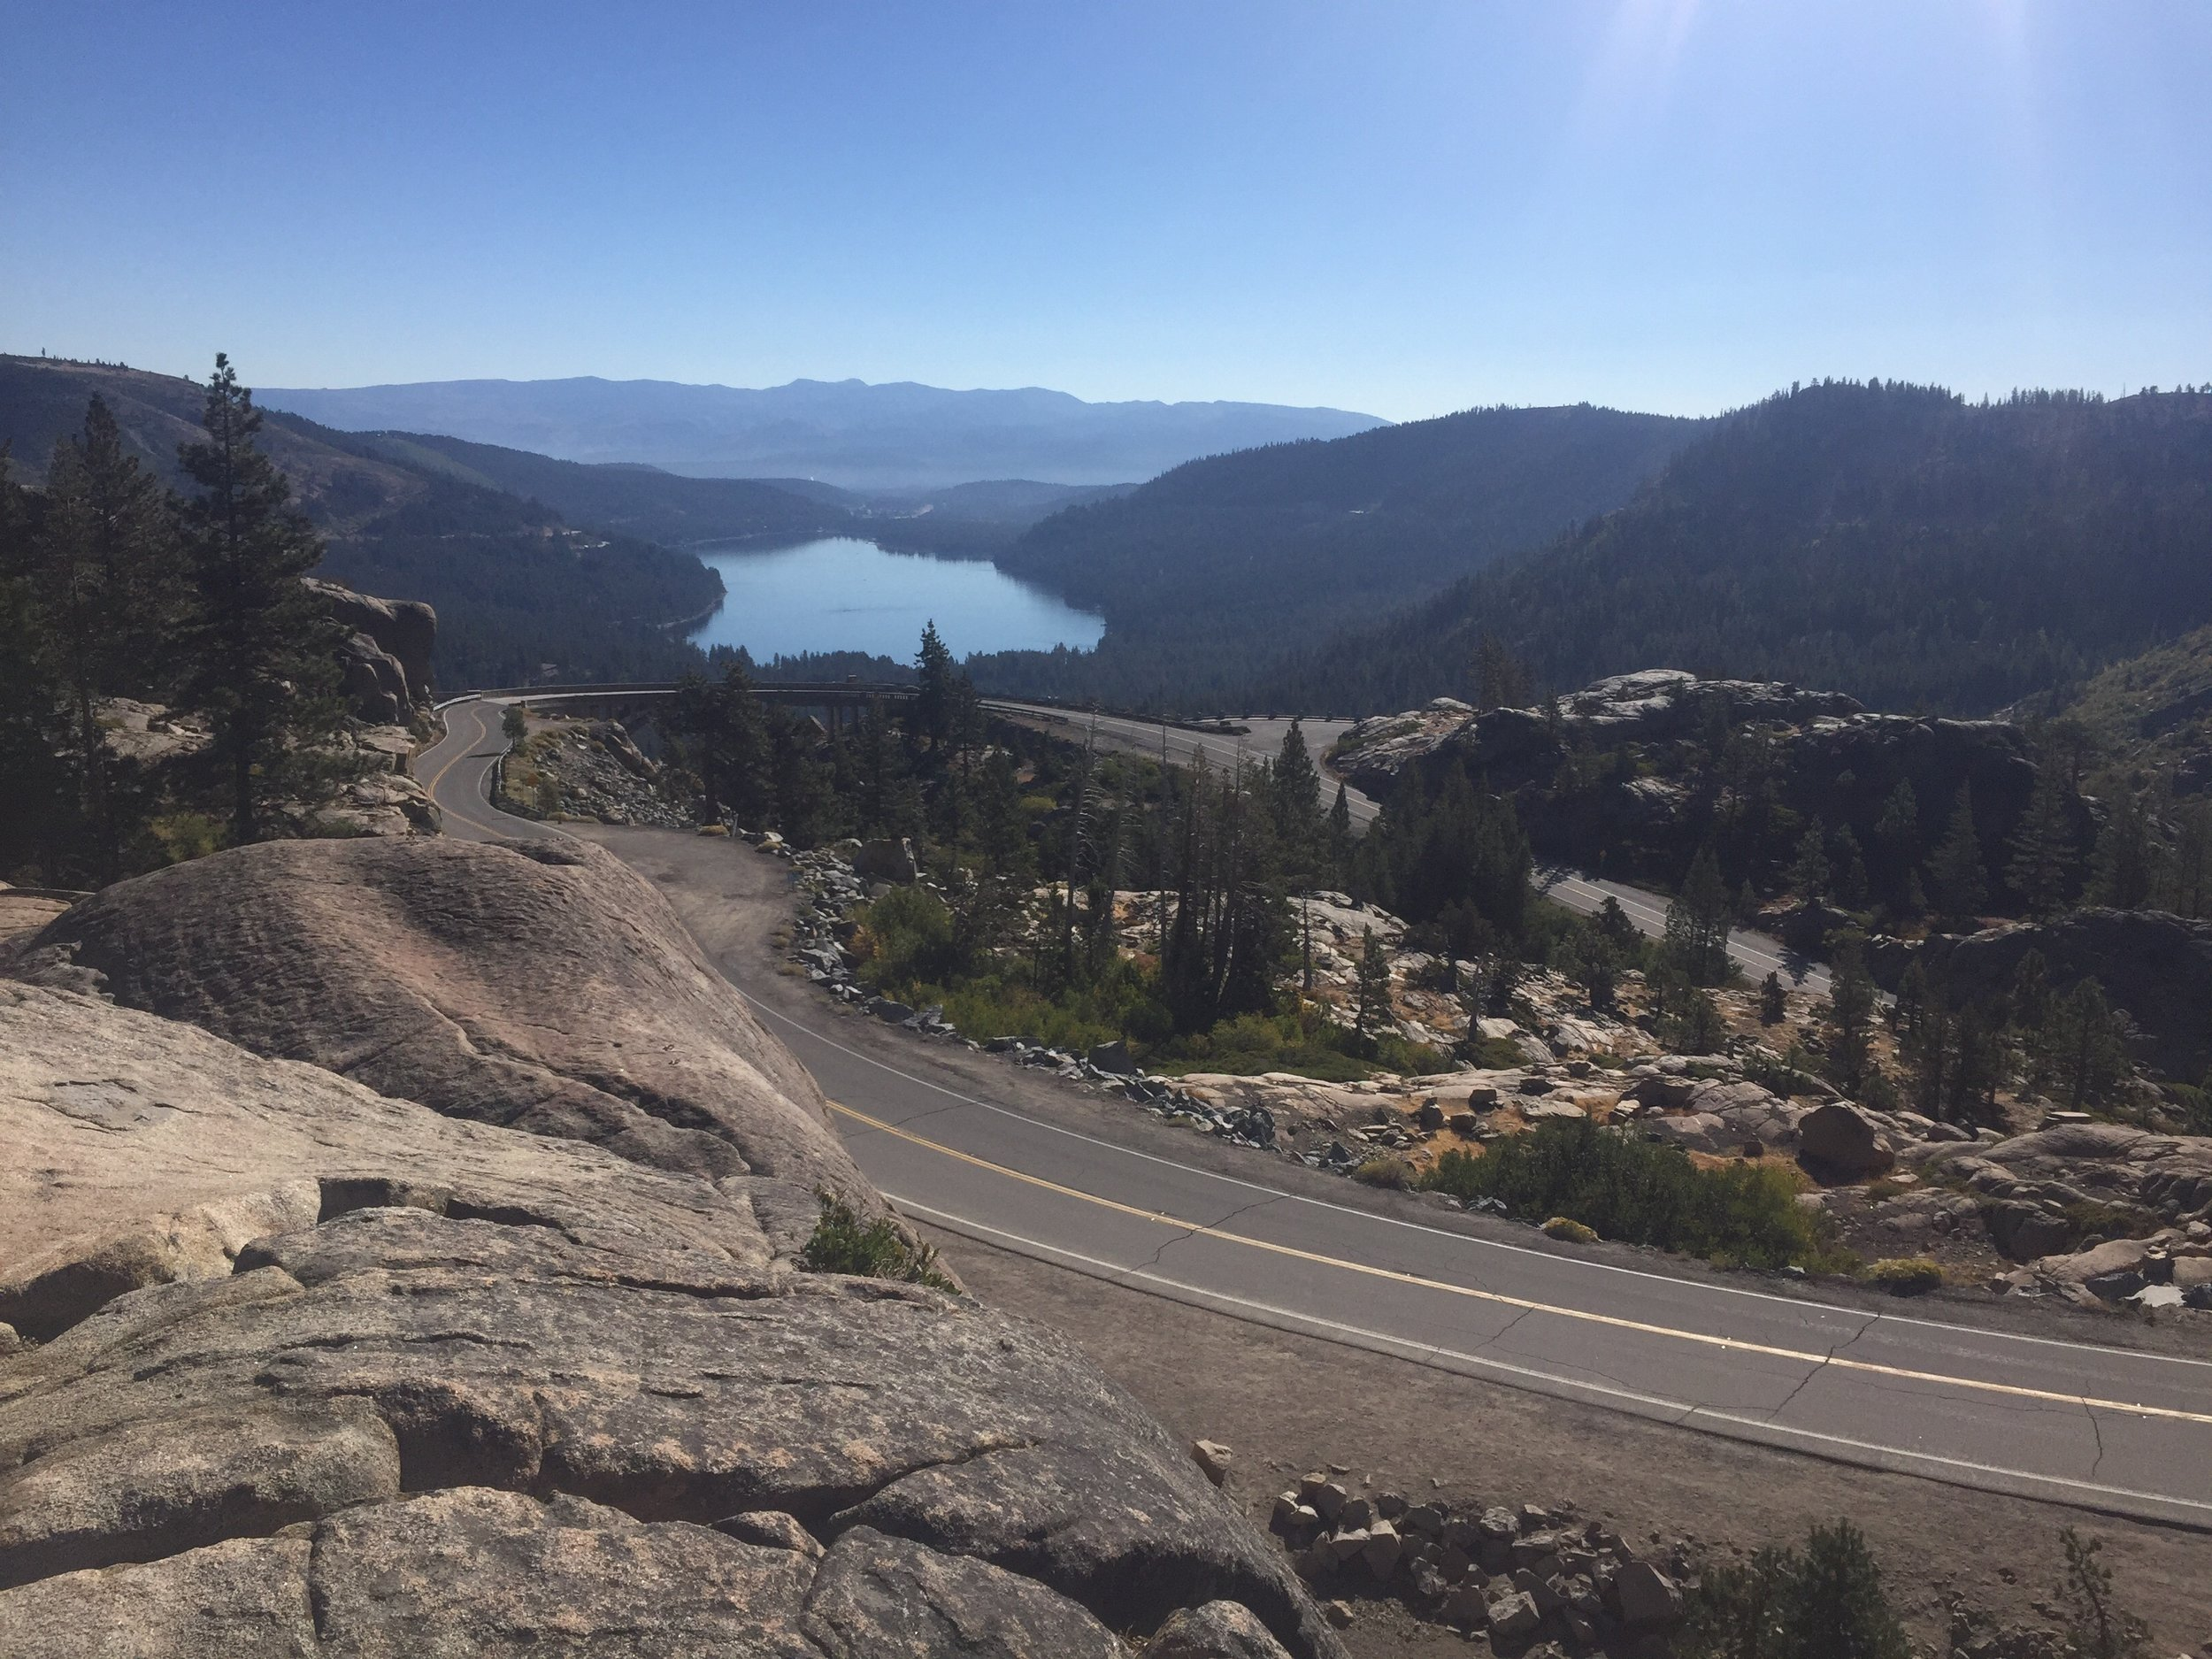 Donner Lake from Old Donner Summit on Hwy 40